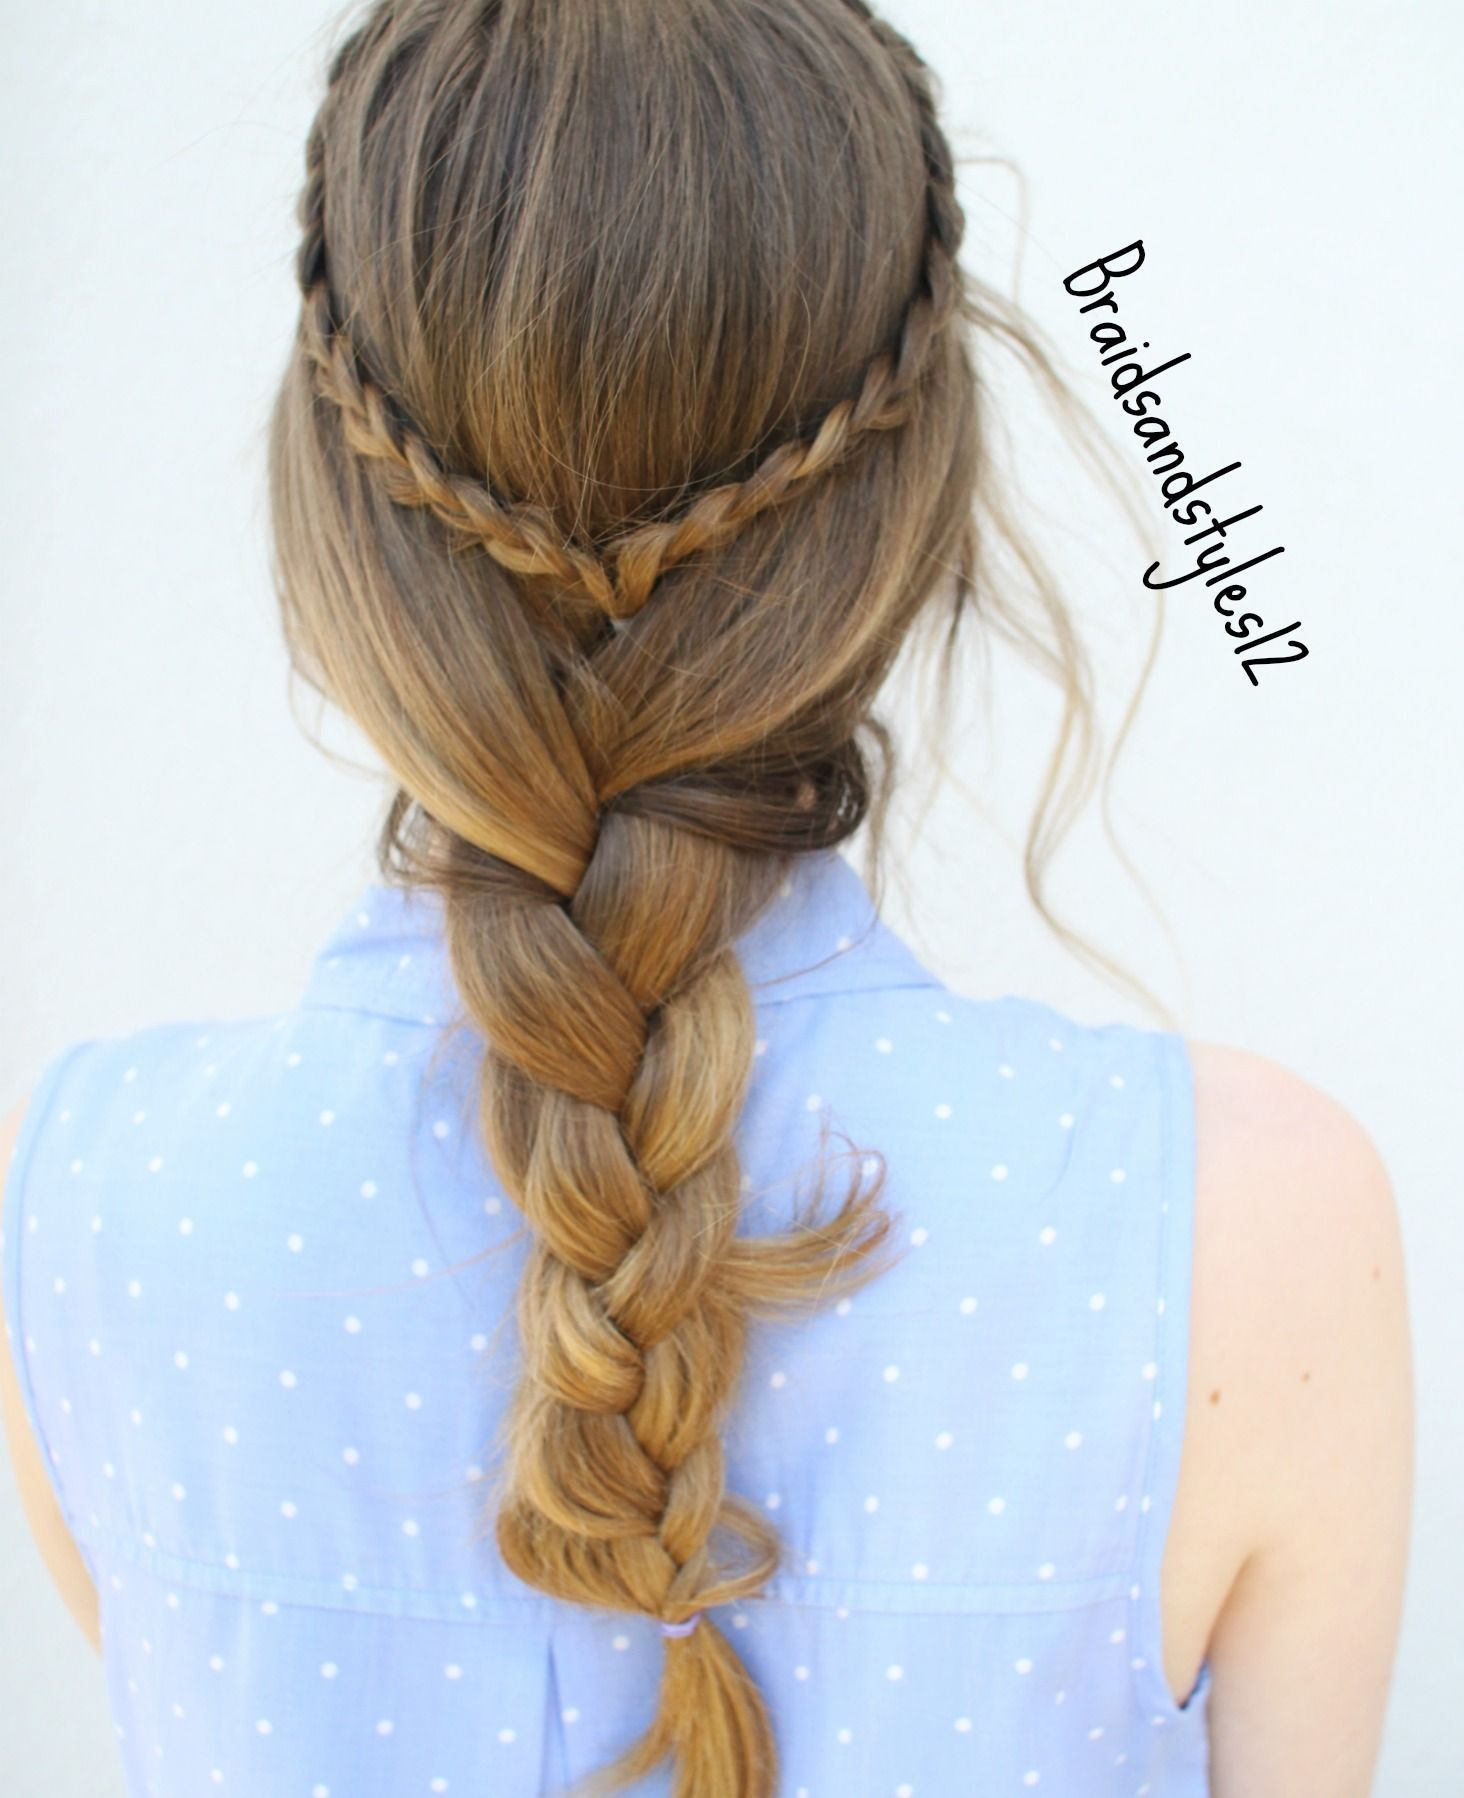 48 Cool Hairstyles Look Ideas images